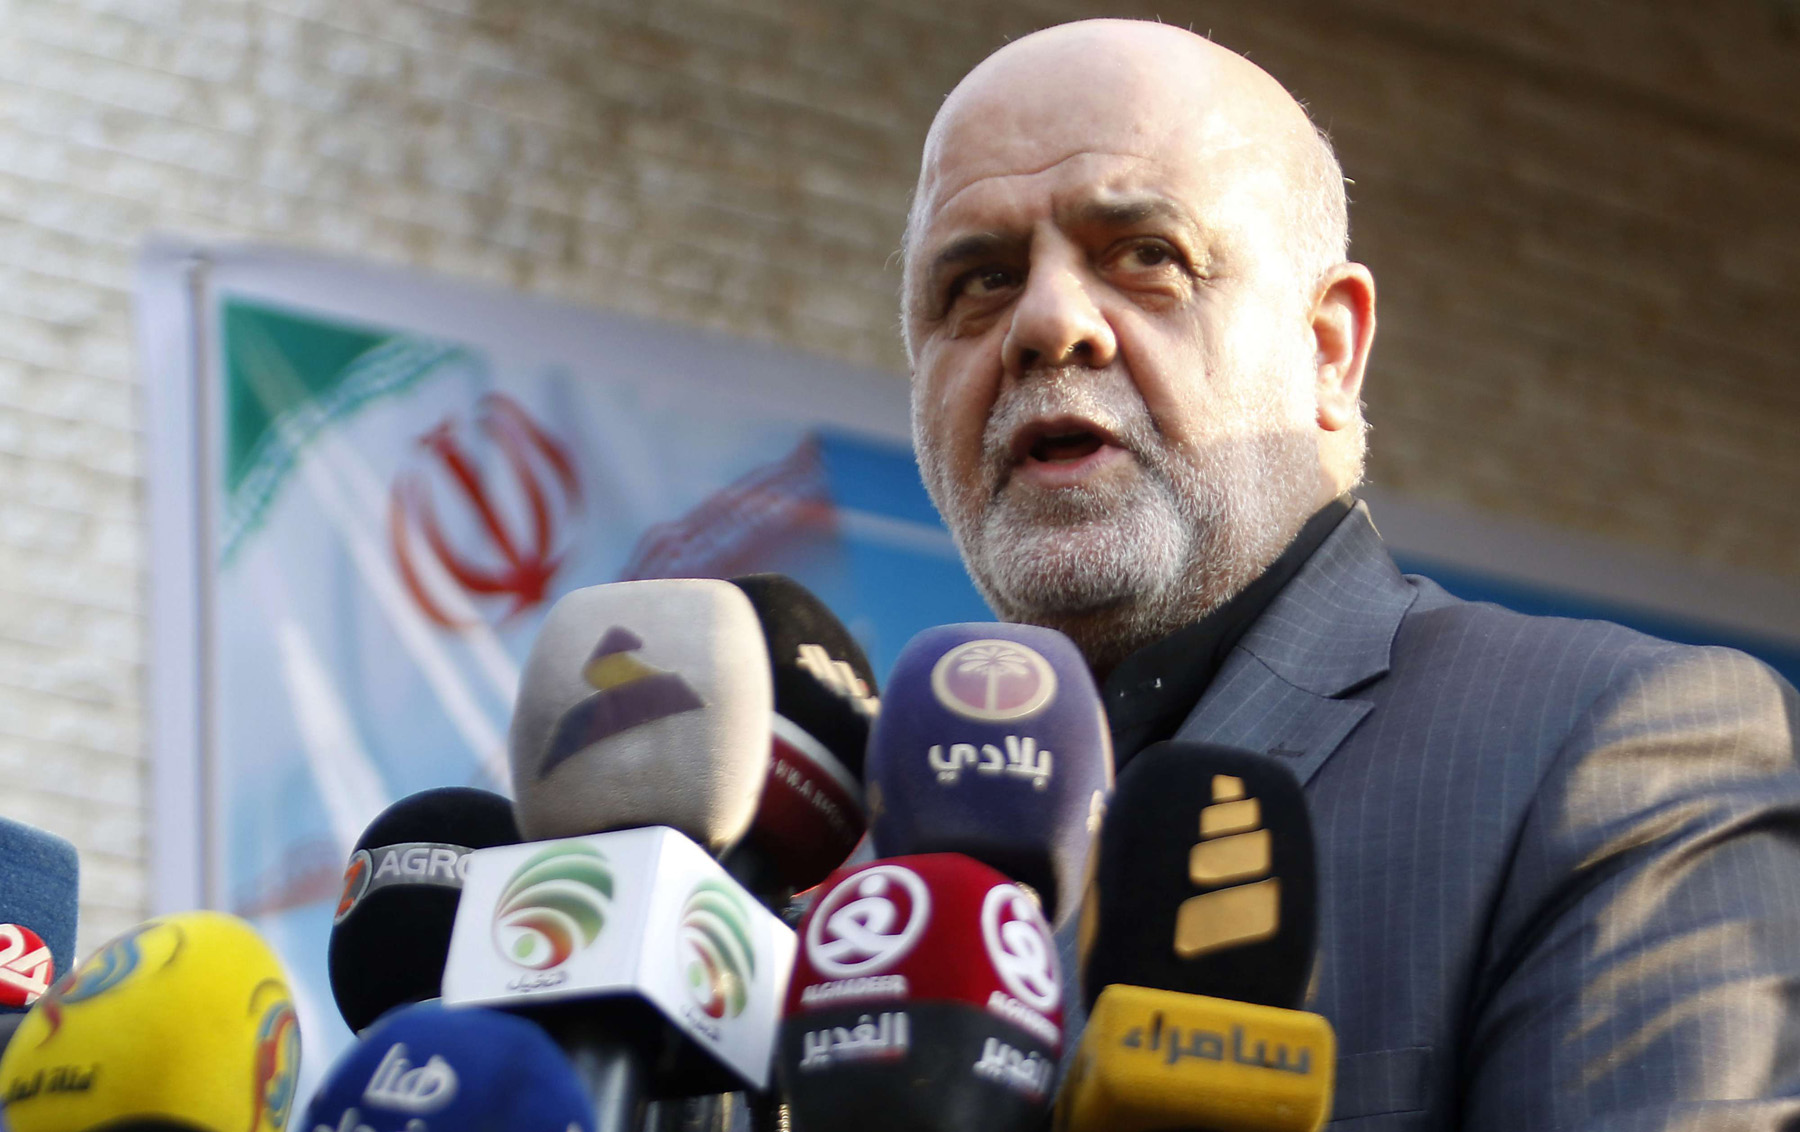 Iranian Ambassador in Iraq Iraj Masjedi speaks outside the new building of the Iranian Consulate in Basra, on September 11. (AFP)